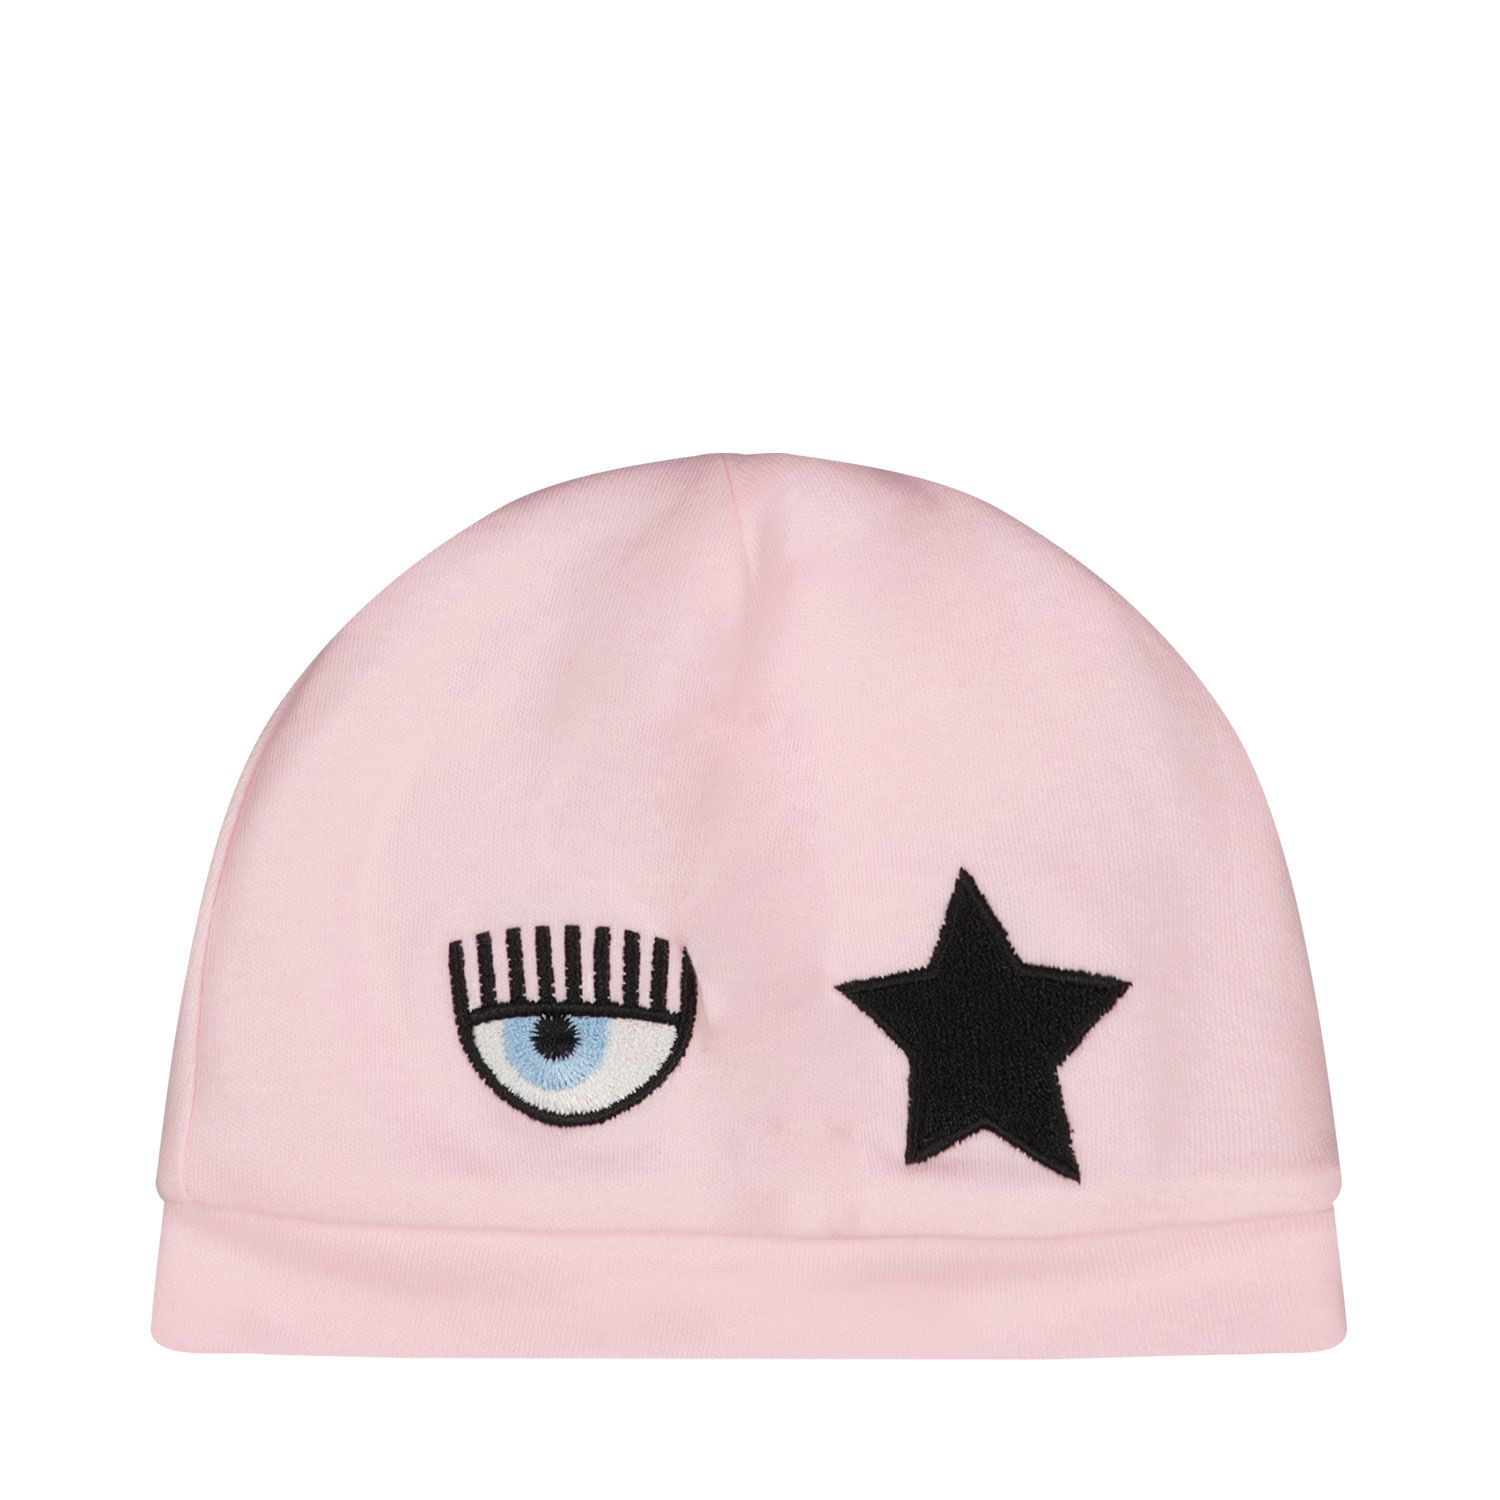 Picture of Chiara Ferragni 558010 baby hat pink